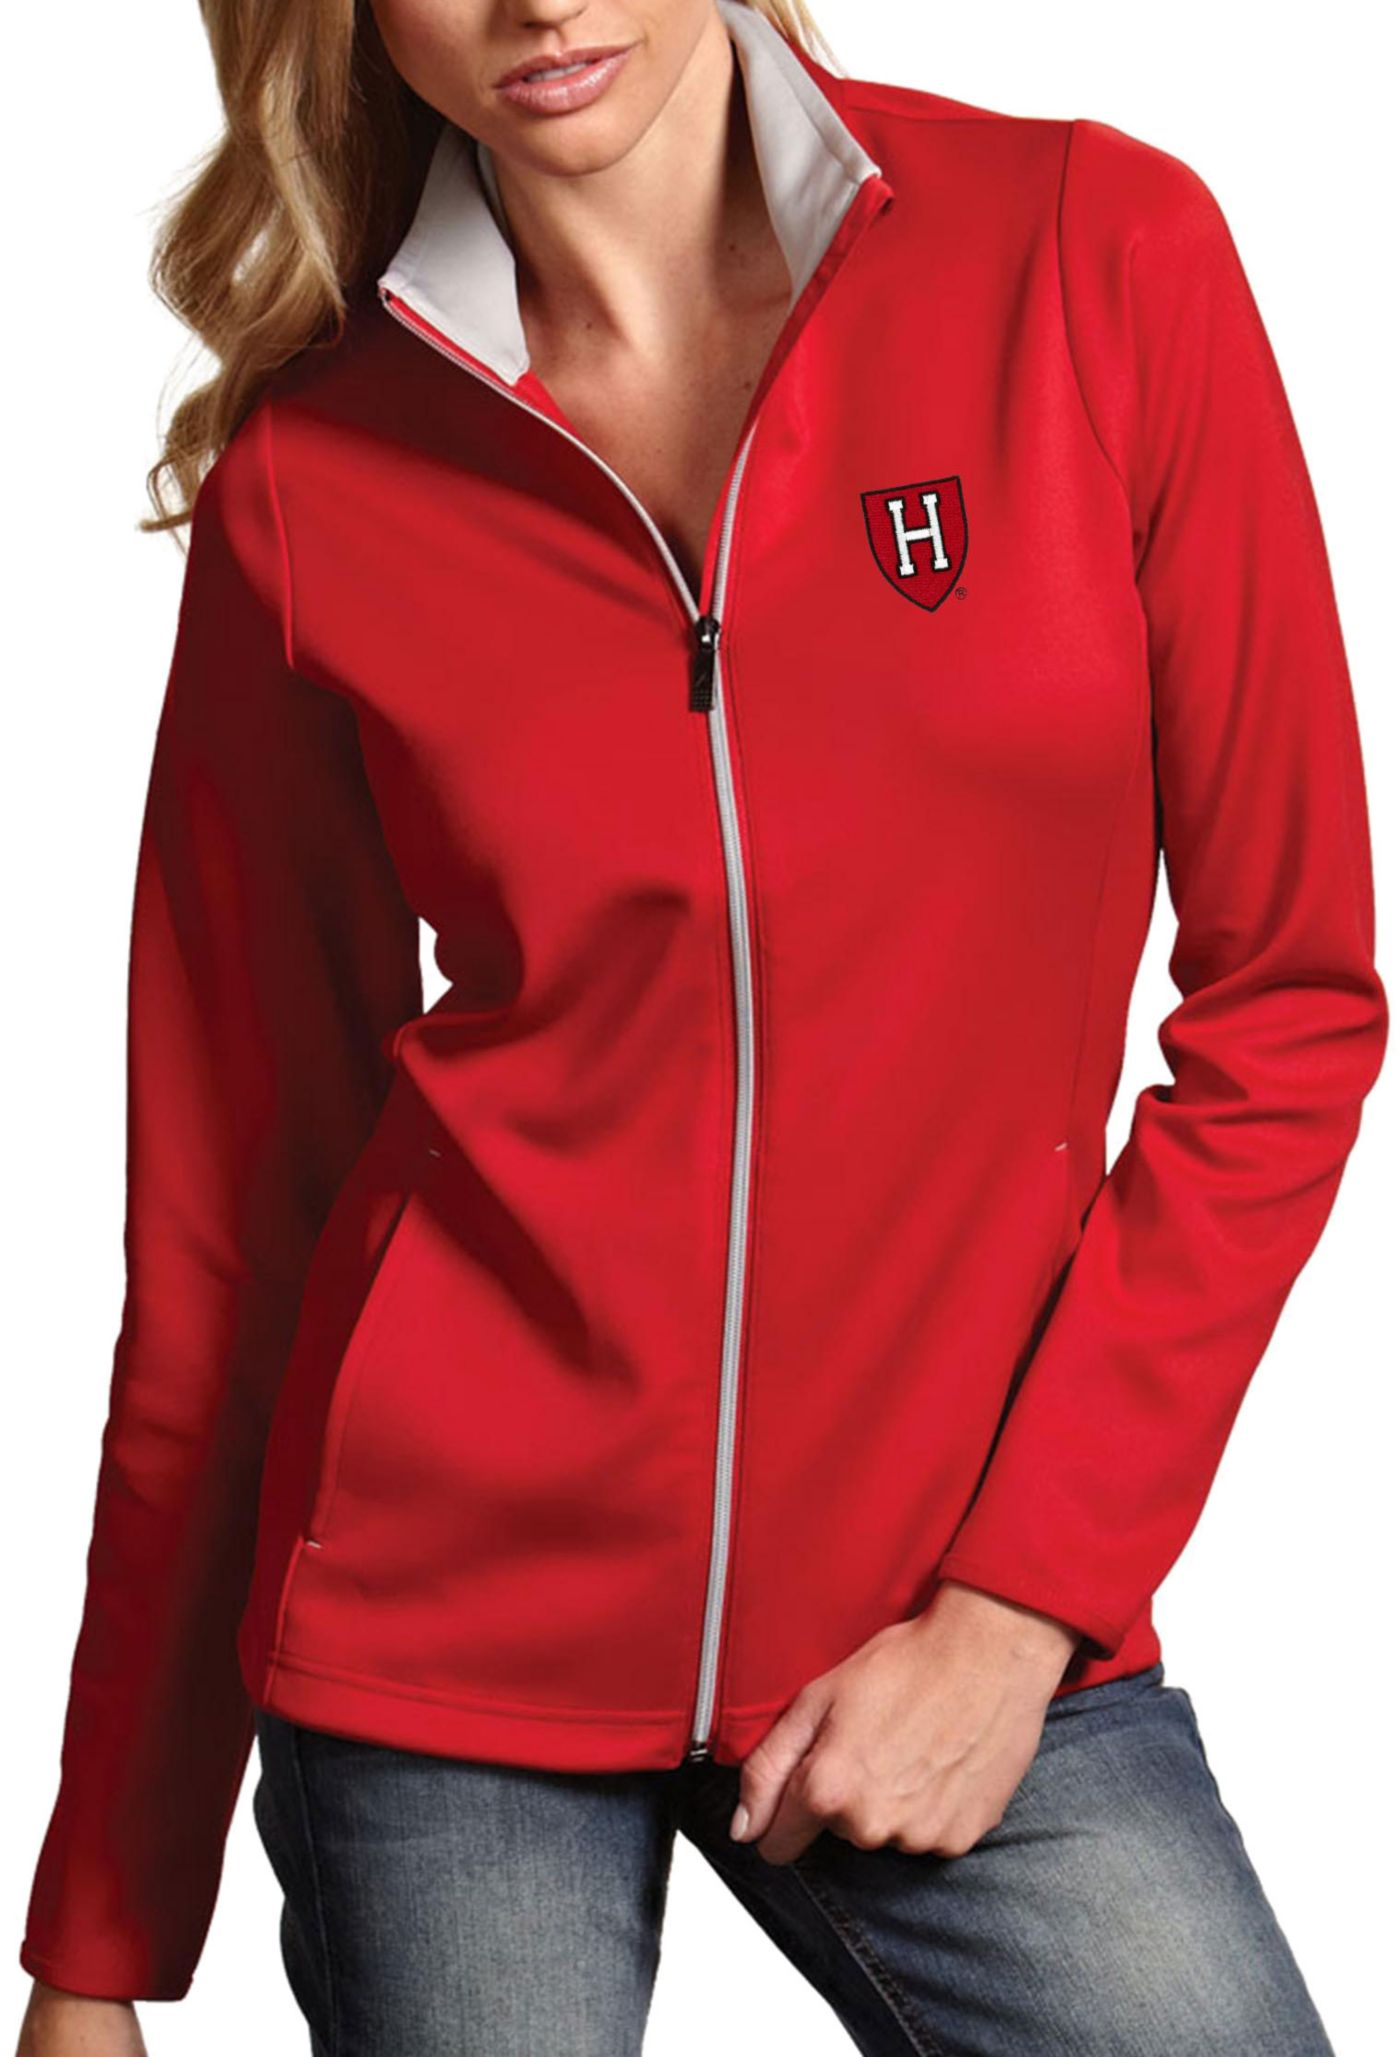 Antigua Women's Harvard Crimson Crimson Leader Full-Zip Jacket